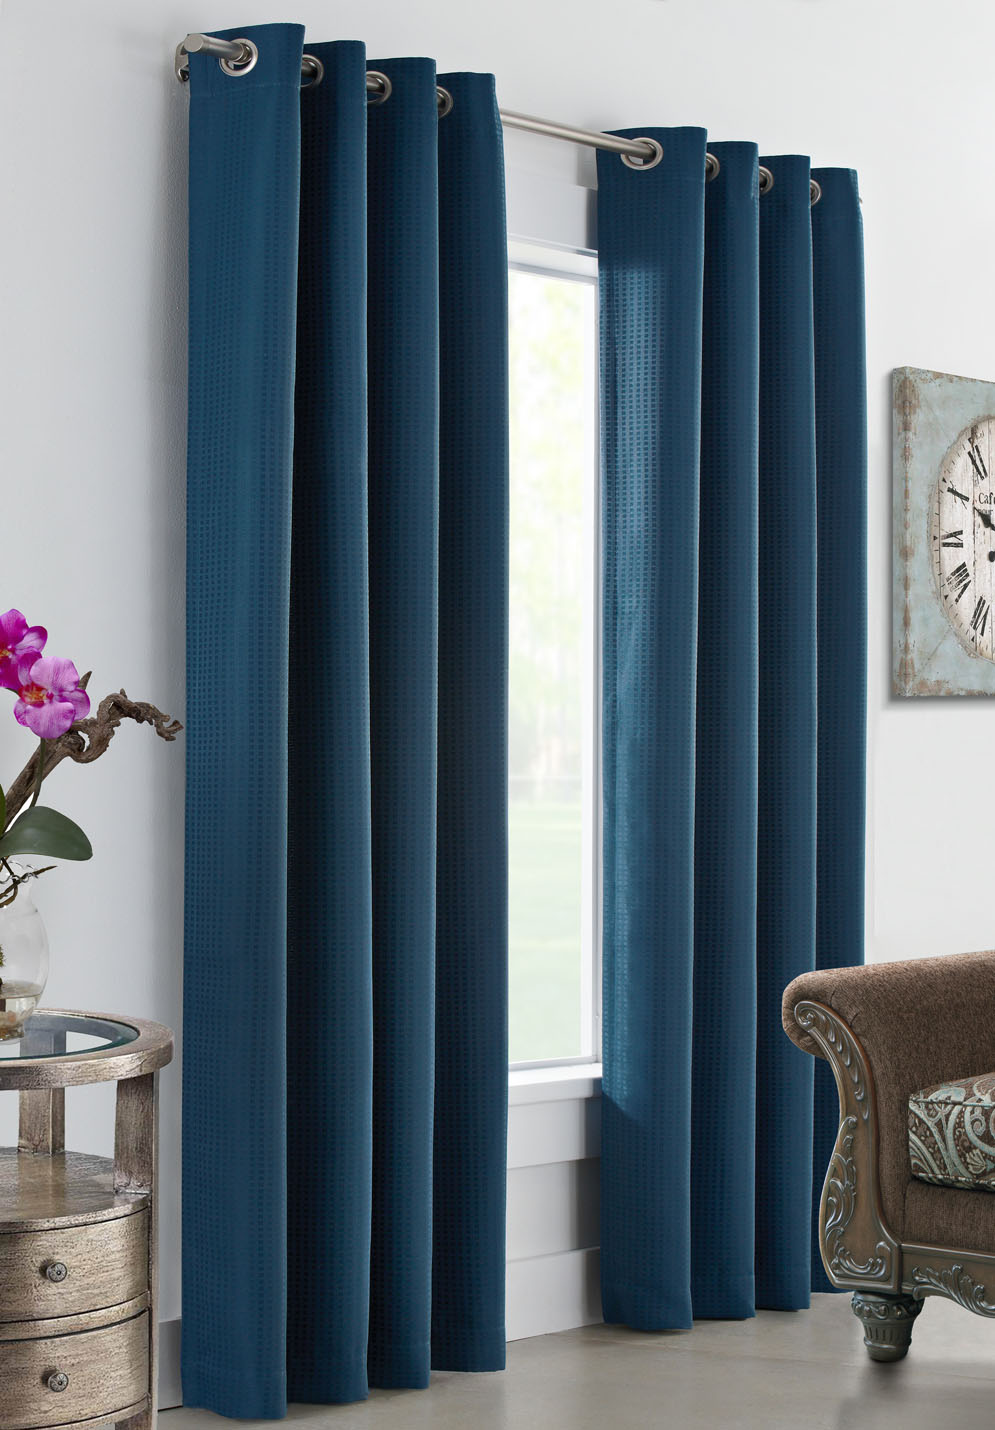 Buy Thermal Curtains | Thermal Curtains Grommet Top | Thermal Insulated Curtains